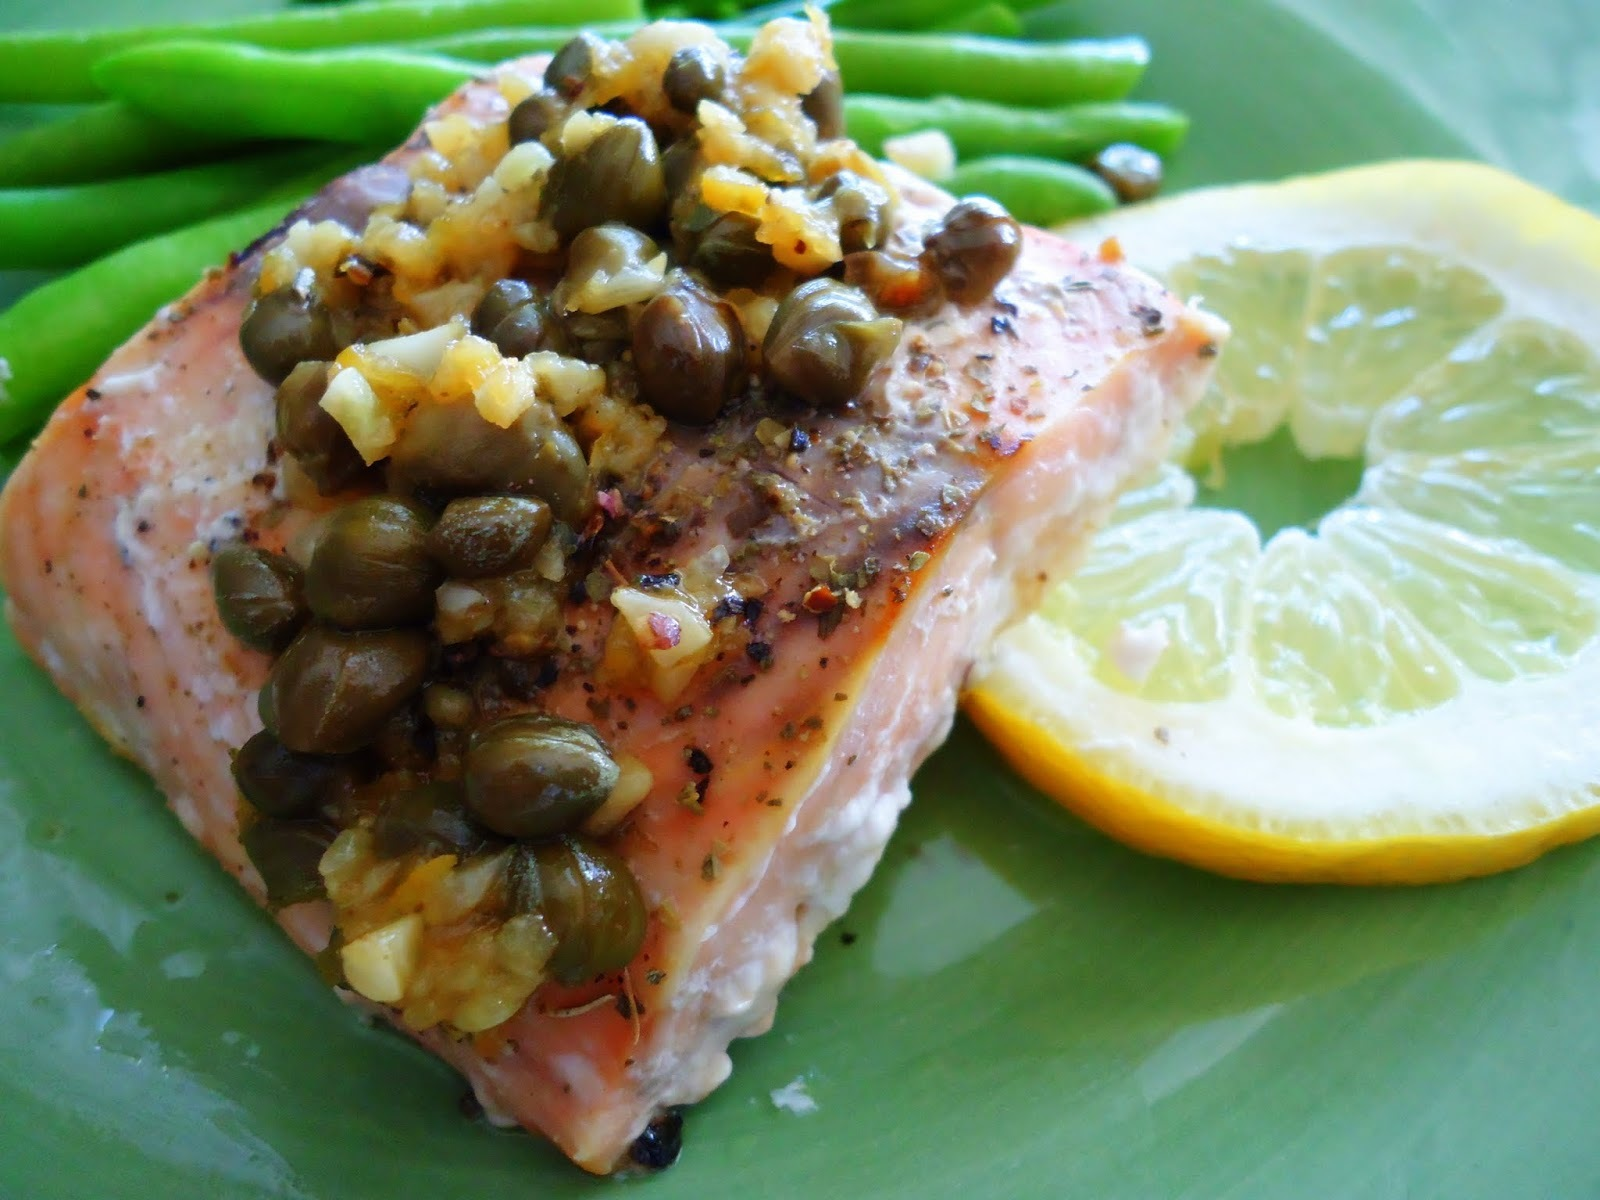 Baked Salmon with Lemon Caper Butter Sauce